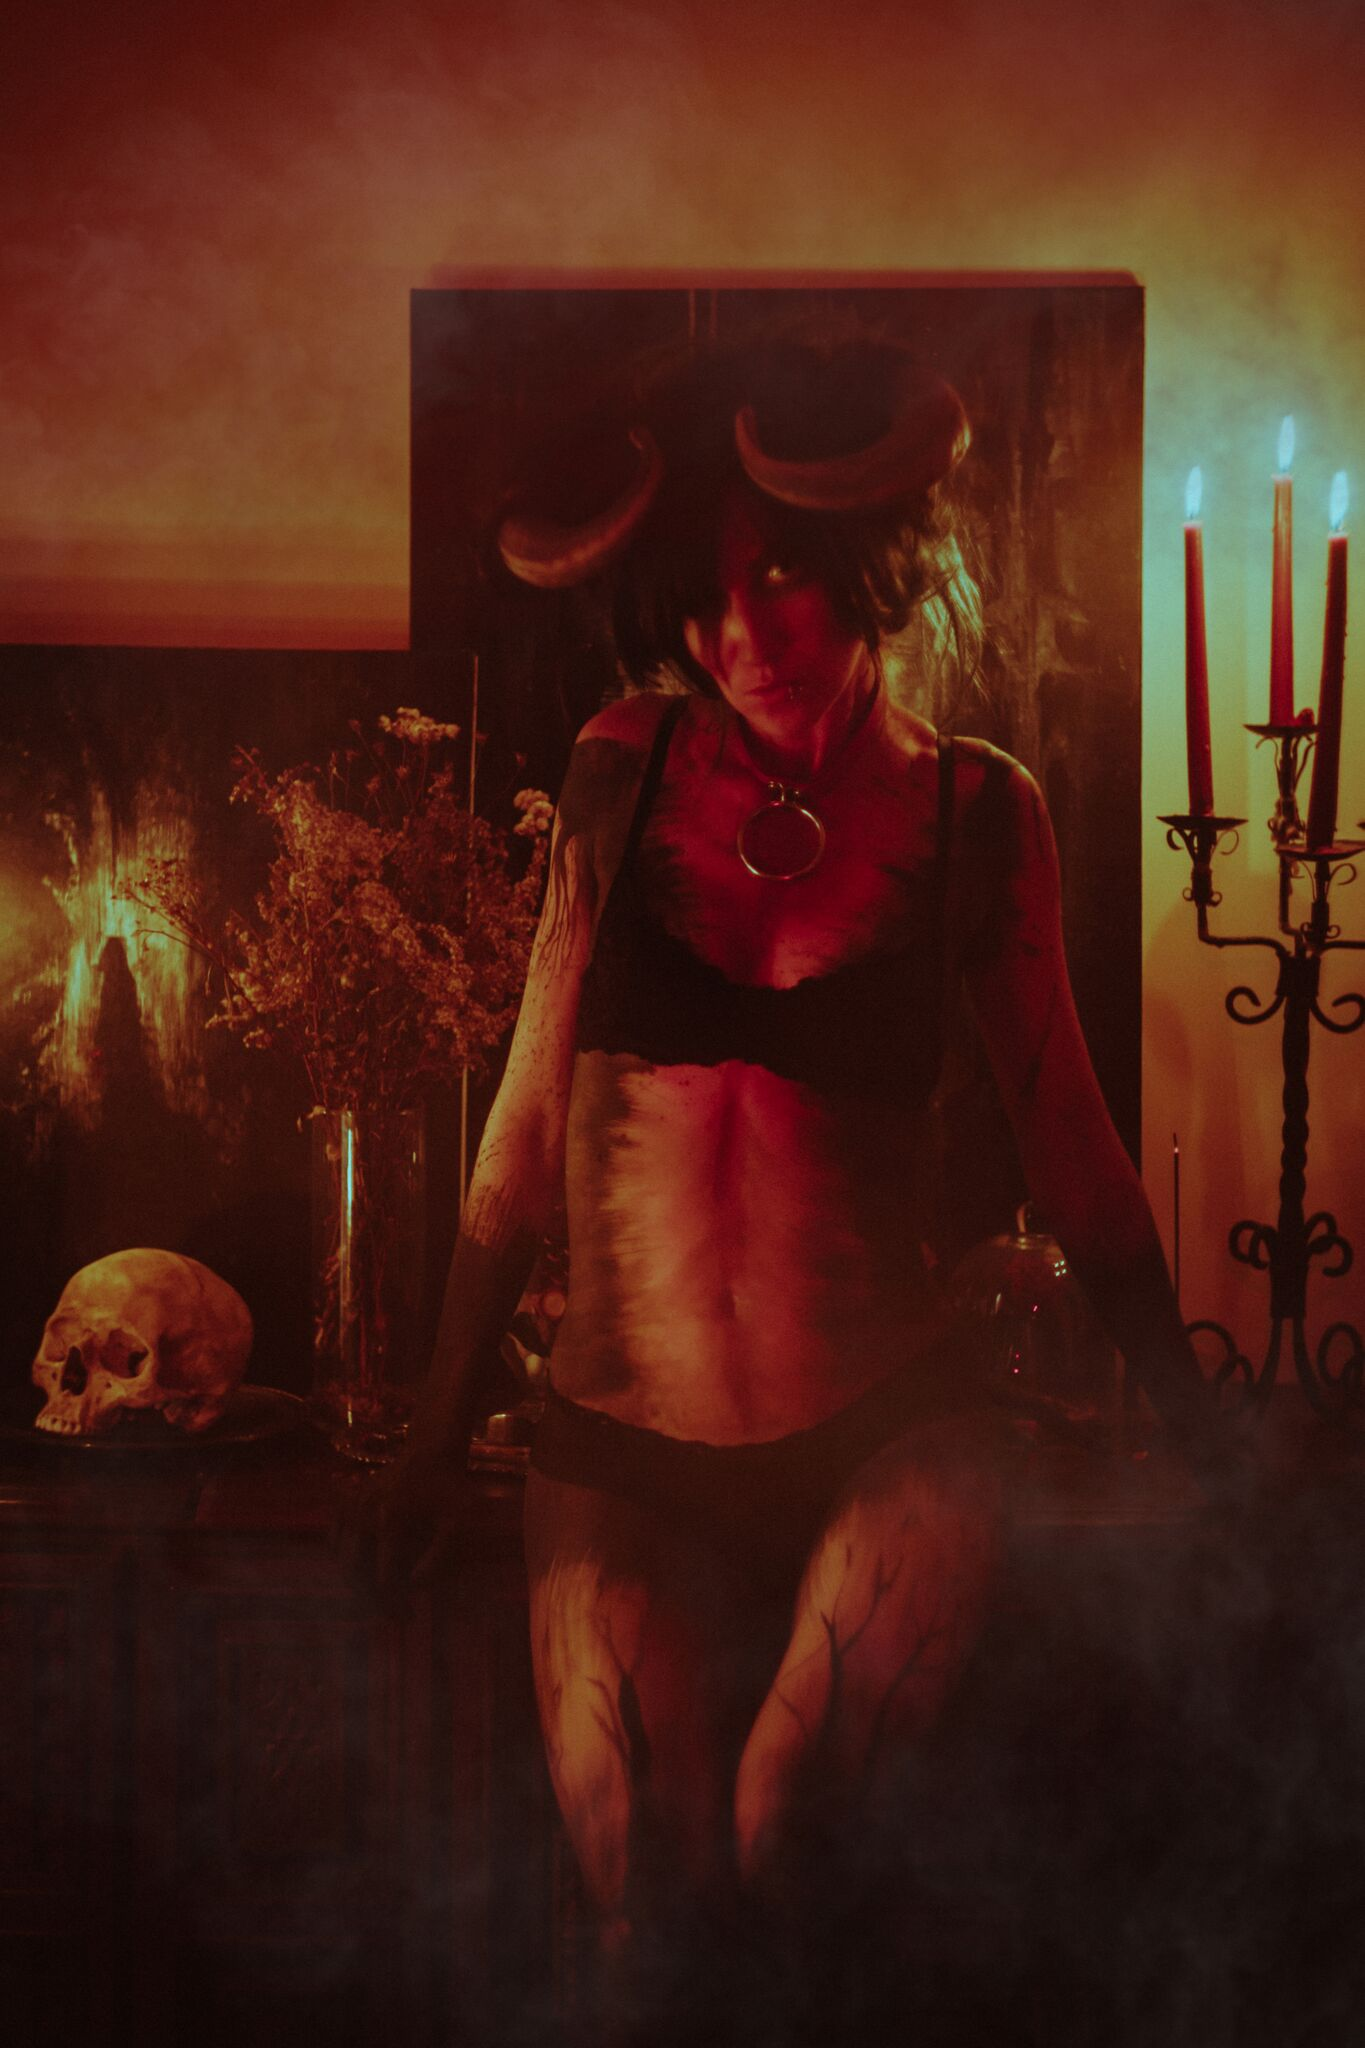 katrin-albert-photography-mccal-strange-halloween-selects-highres-19_preview.jpeg